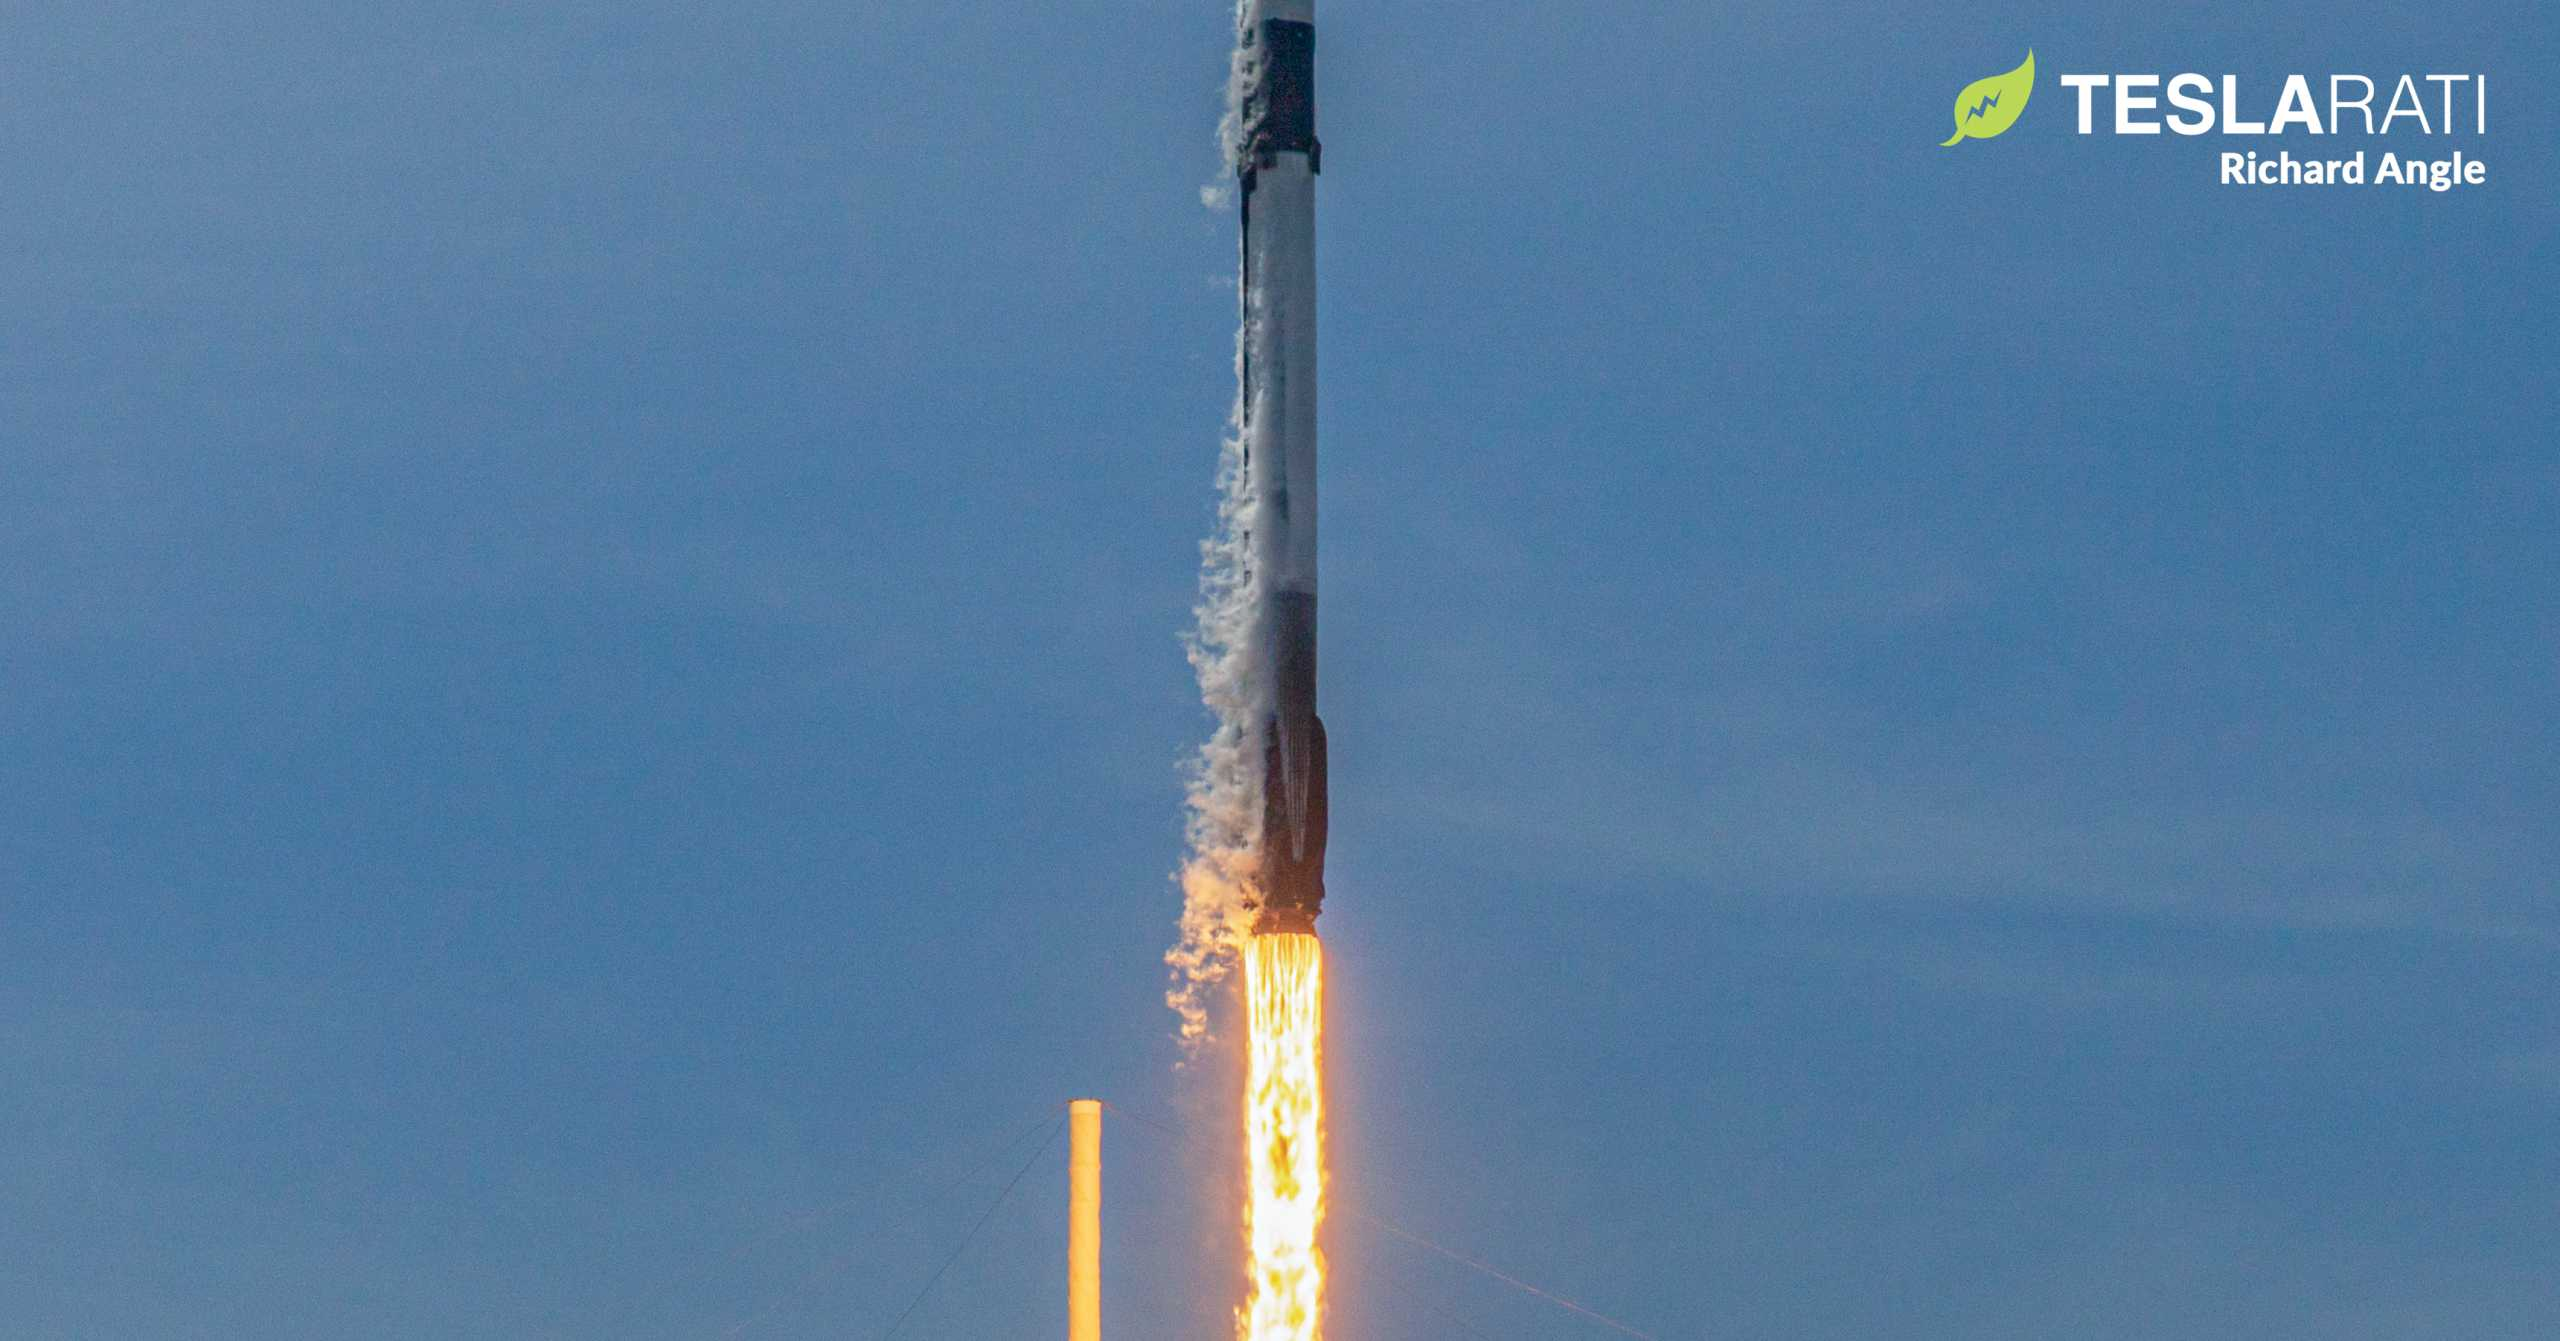 Falcon 9 Starlink 6 042220 (Richard Angle) launch 7 crop 2 (c)